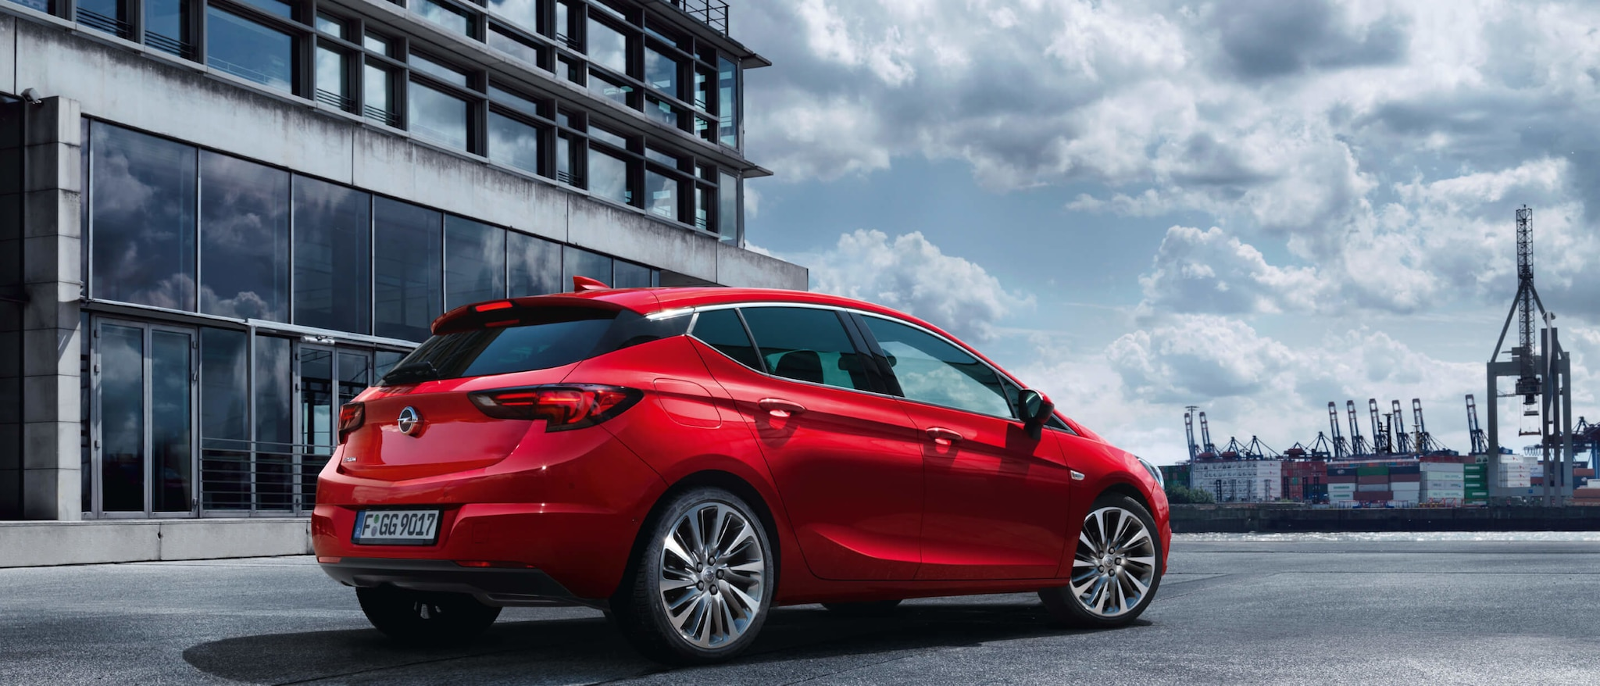 Lateral Opel Astra